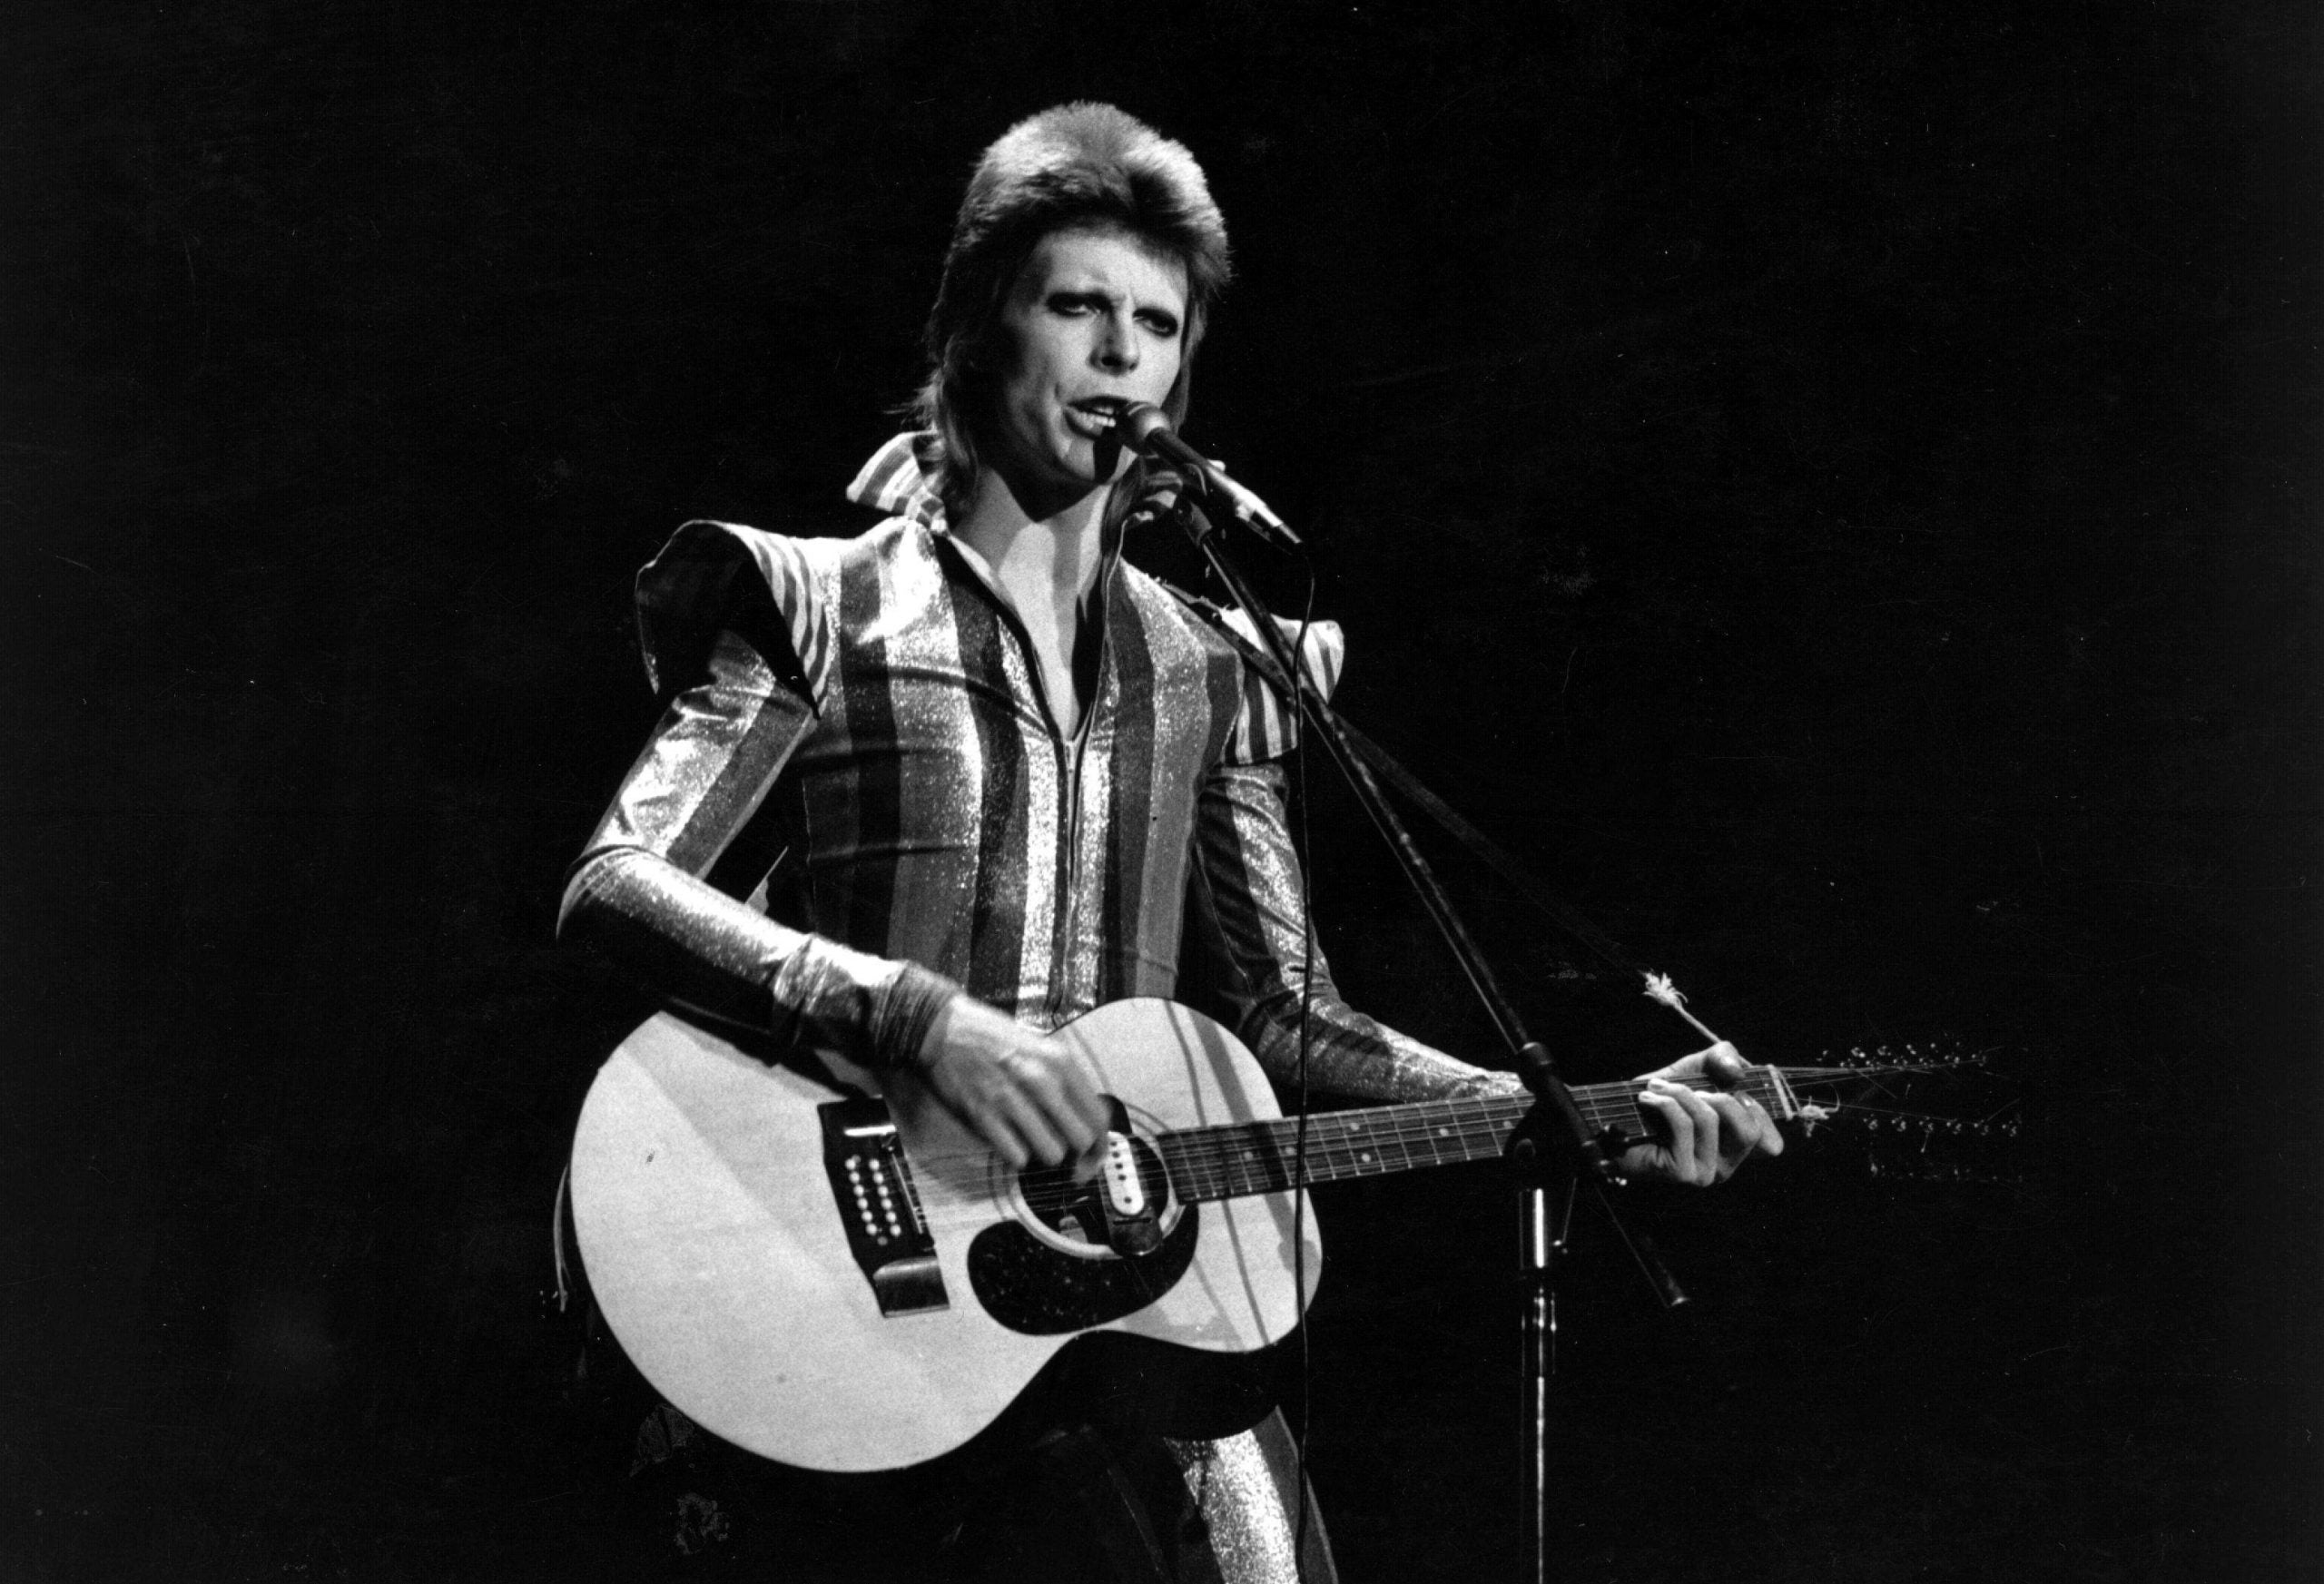 """Deborah Levy on Ziggy Stardust by David Bowie: """"Britain needs this so much more than Brexit"""""""